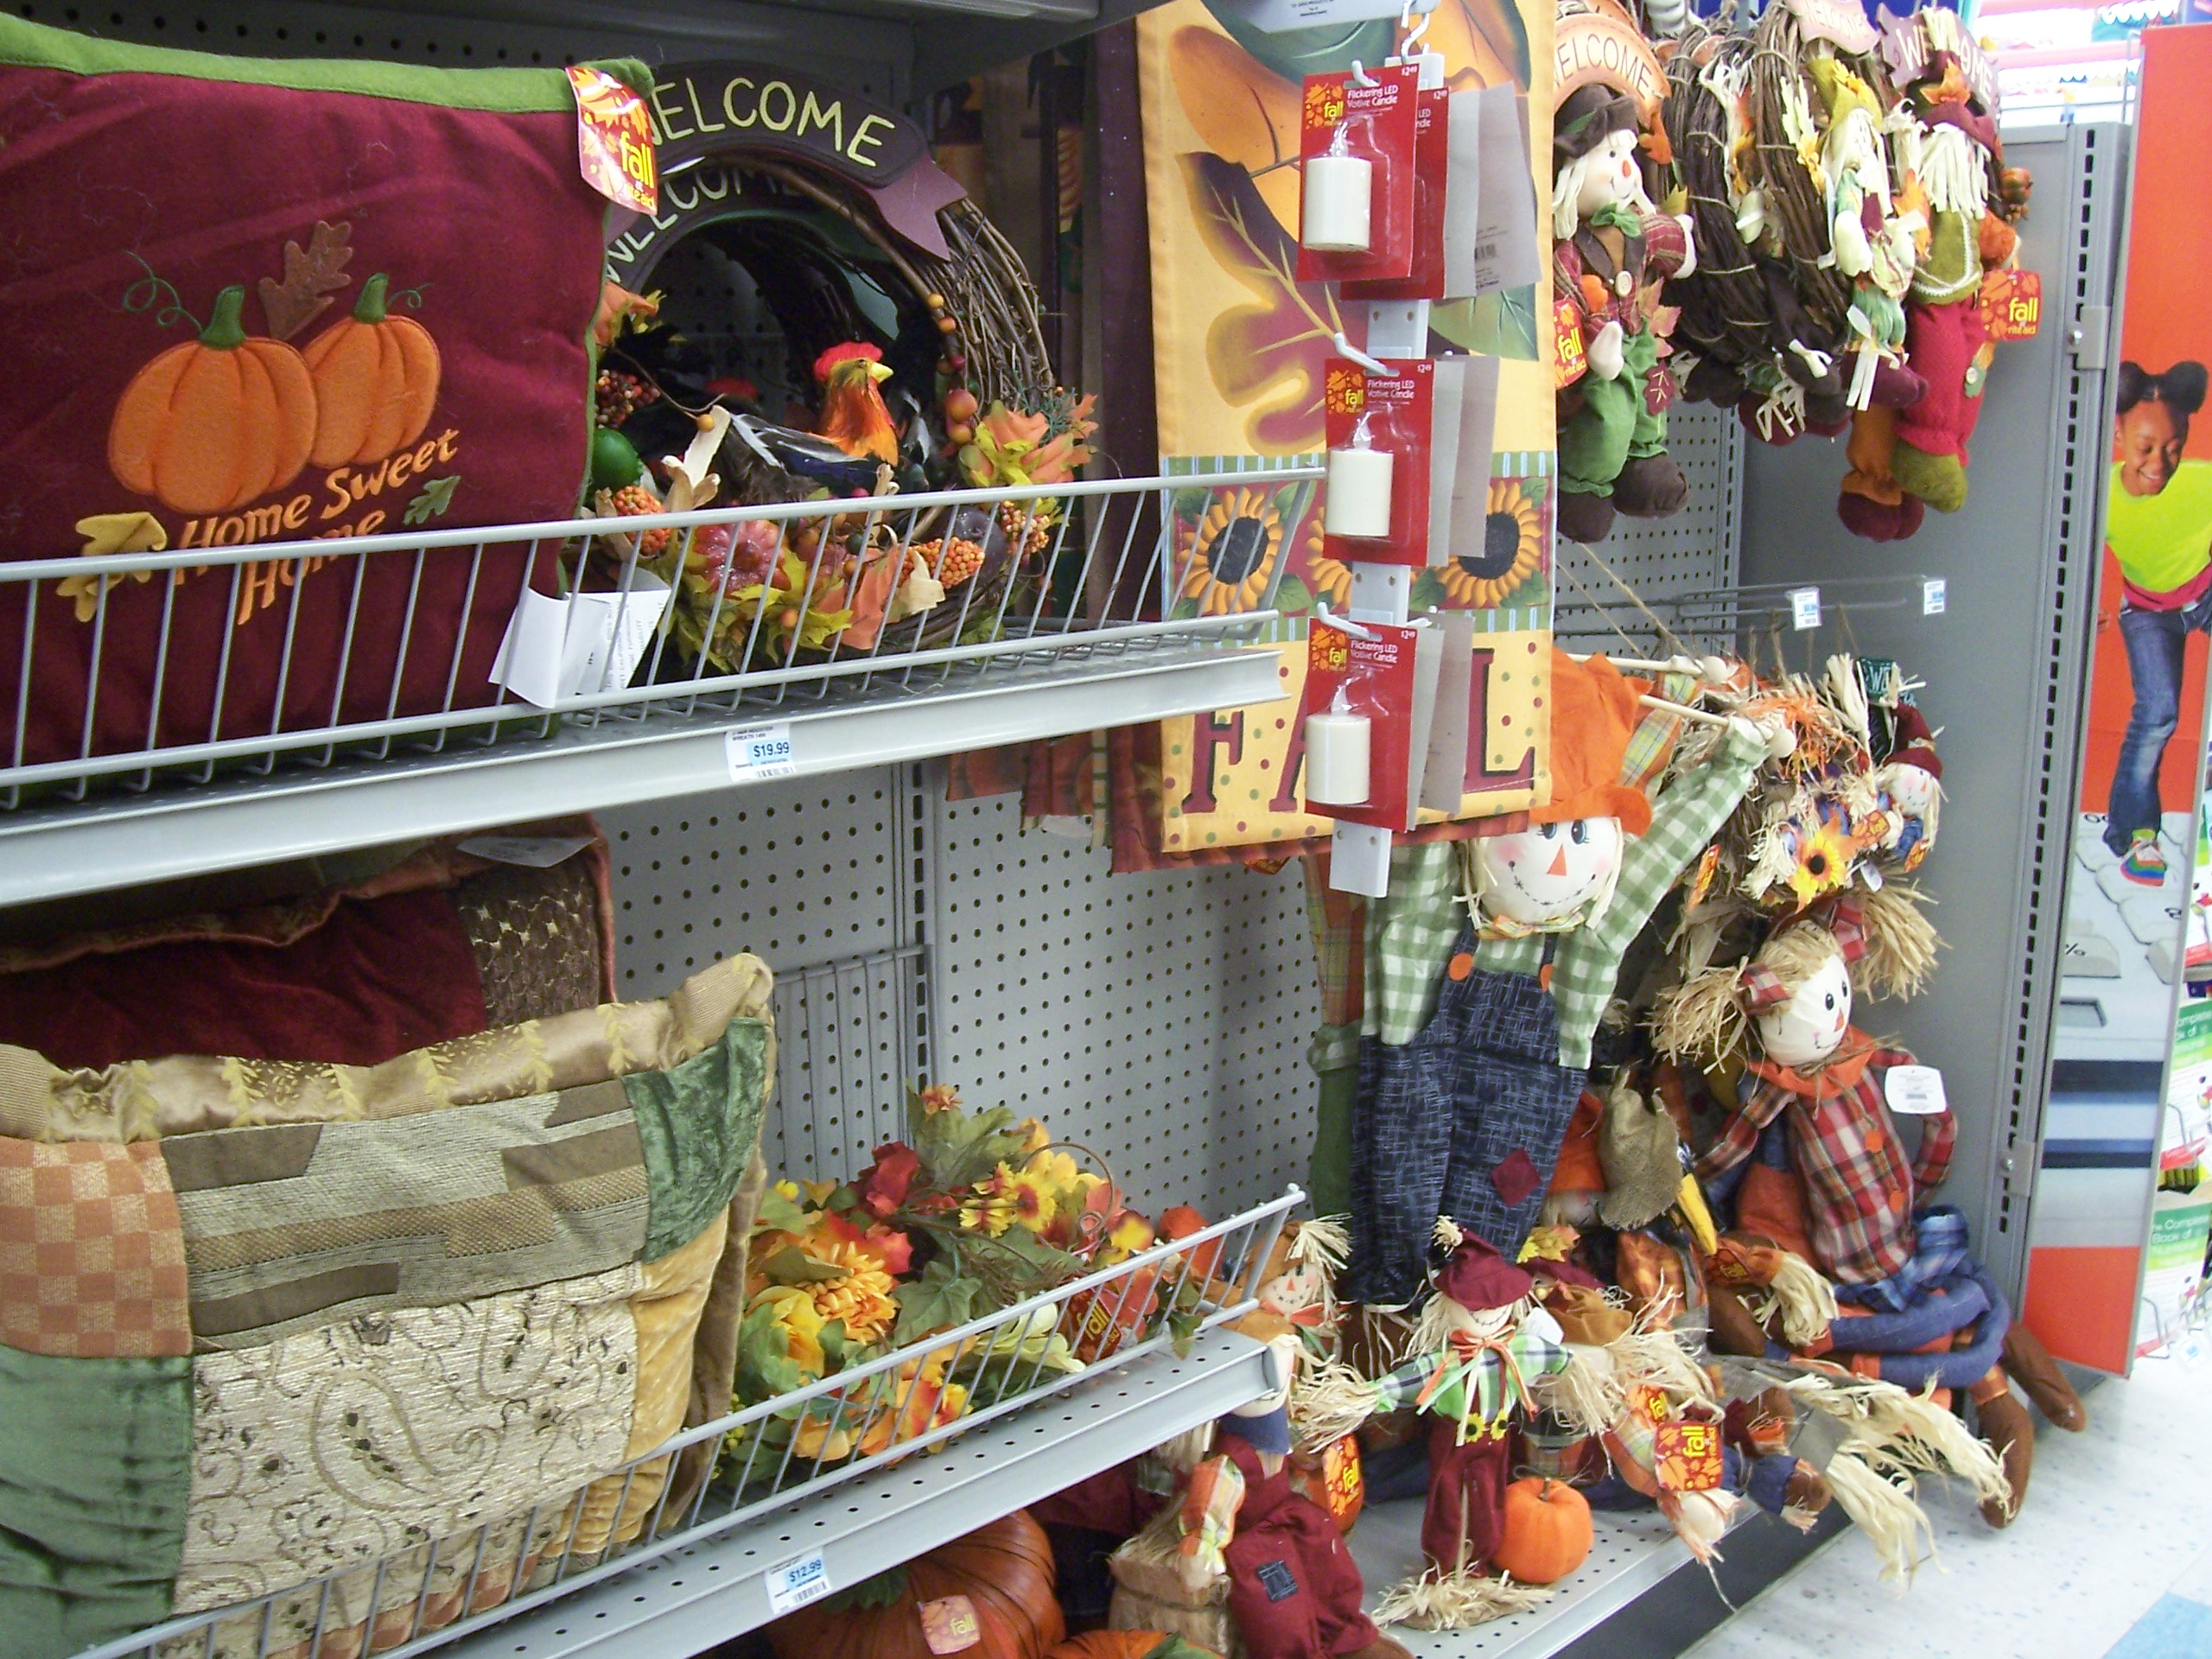 """The first sign of fall isn't football practice or back-to-school shopping  -- it's the """"seasonal"""" aisle at CVS changing from sunscreen and beach toys to pumpkins and scarecrows ... in the first week of August."""